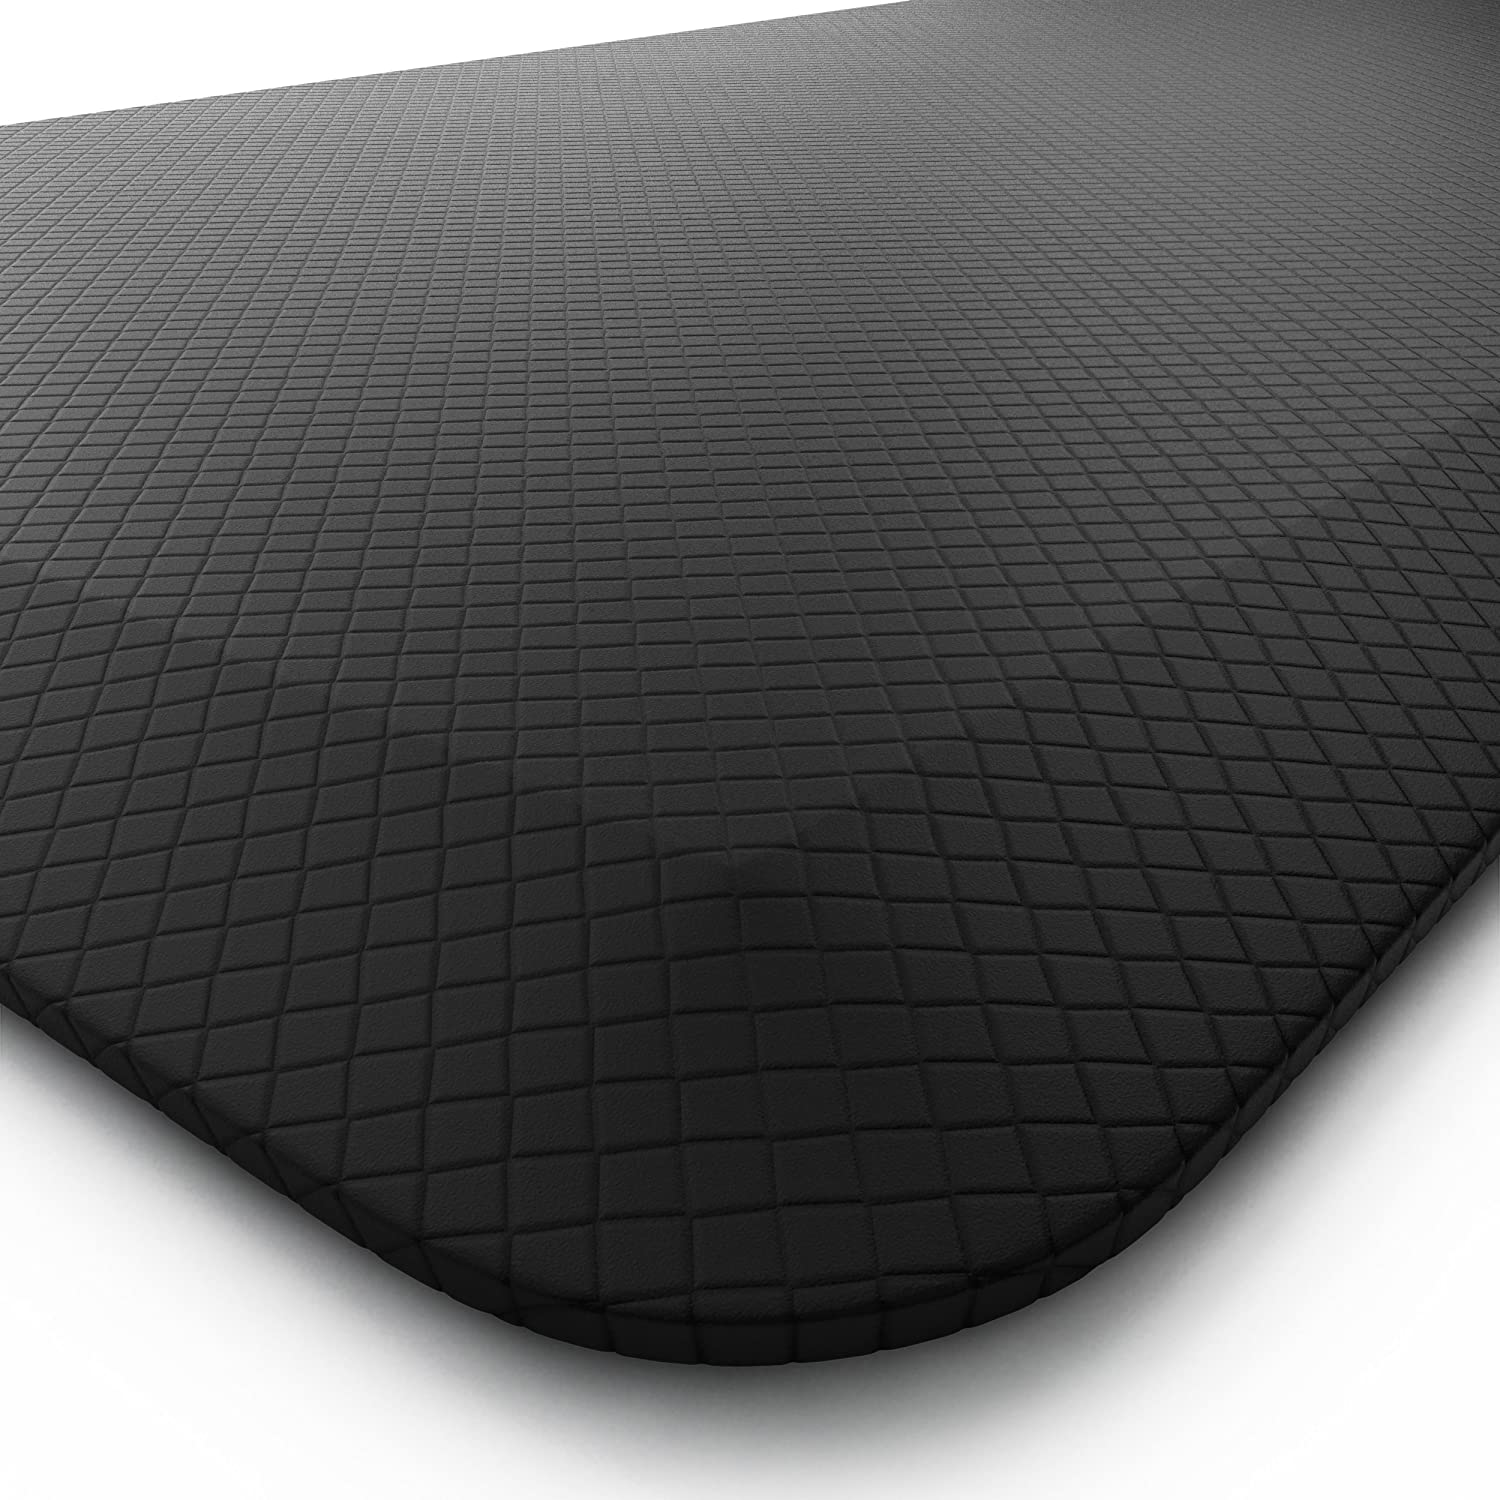 "Homey Brands Anti Fatigue Mat for Home, Office & Kitchen – Large 20"" x 39"" Non-Slip Standing Mat"